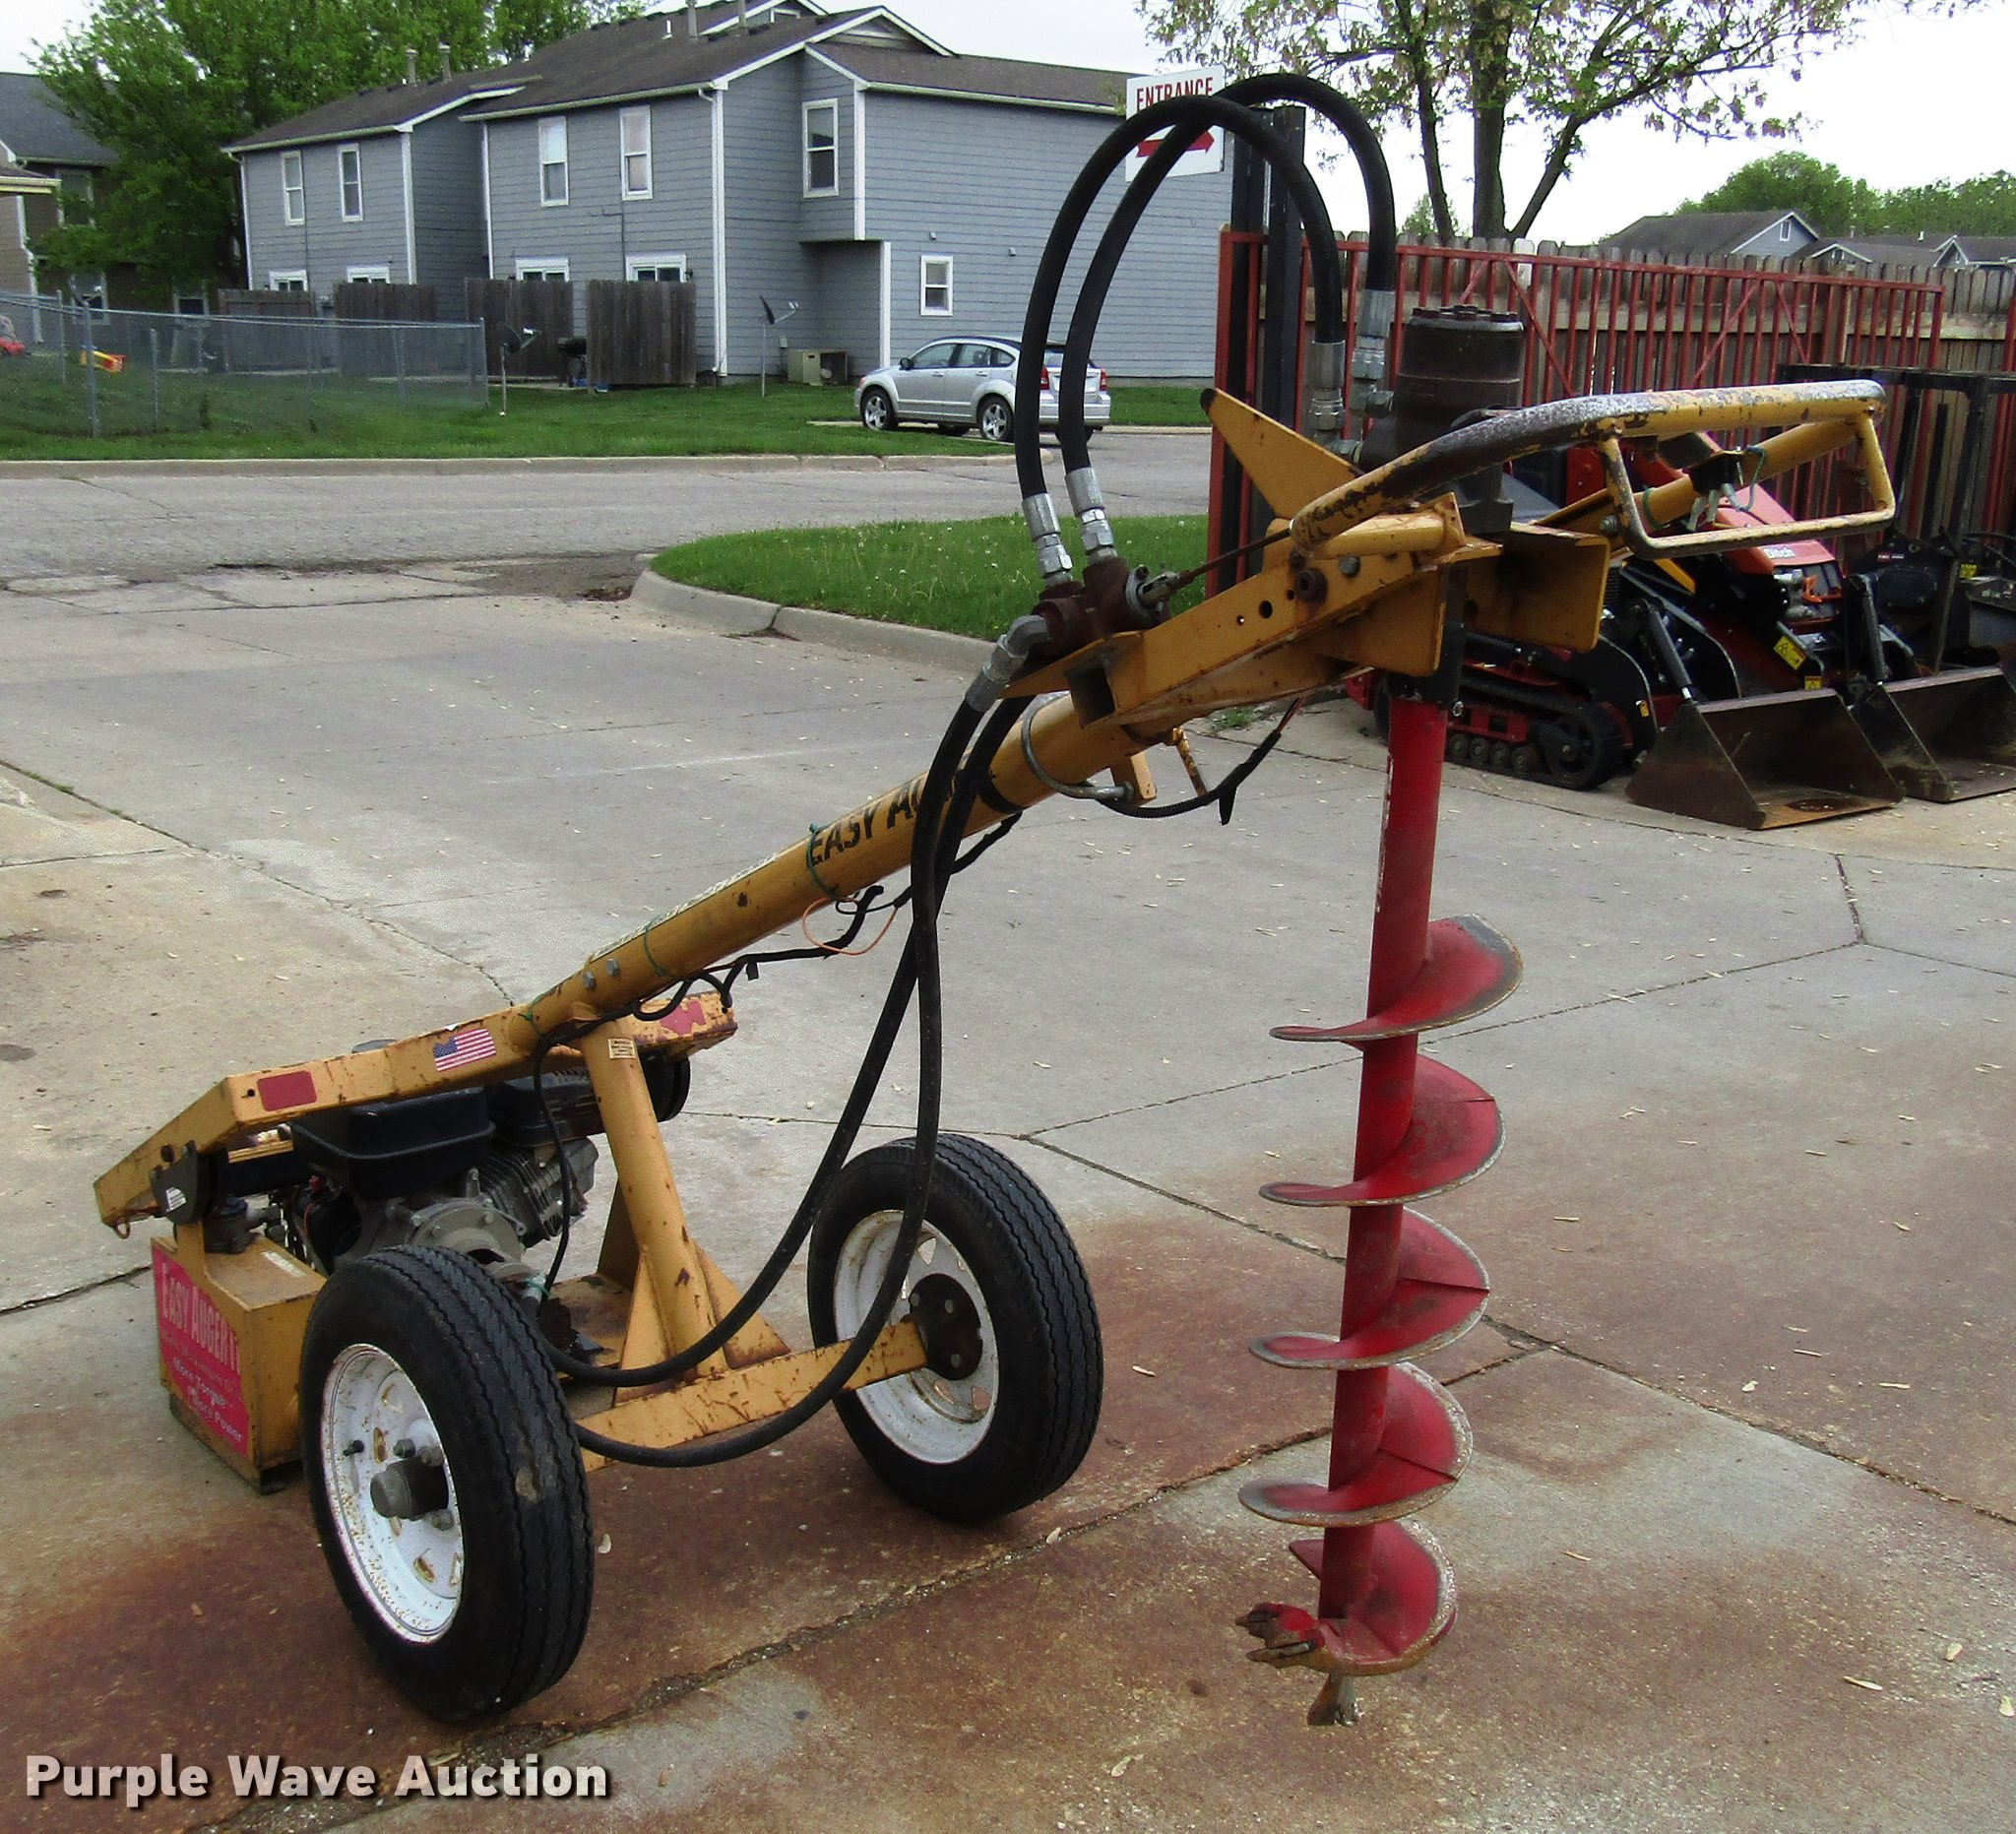 Easy Auger One Man Towable Auger for sale or rent sunflower equipment rentals topeka lawrence kansas blue springs missouri